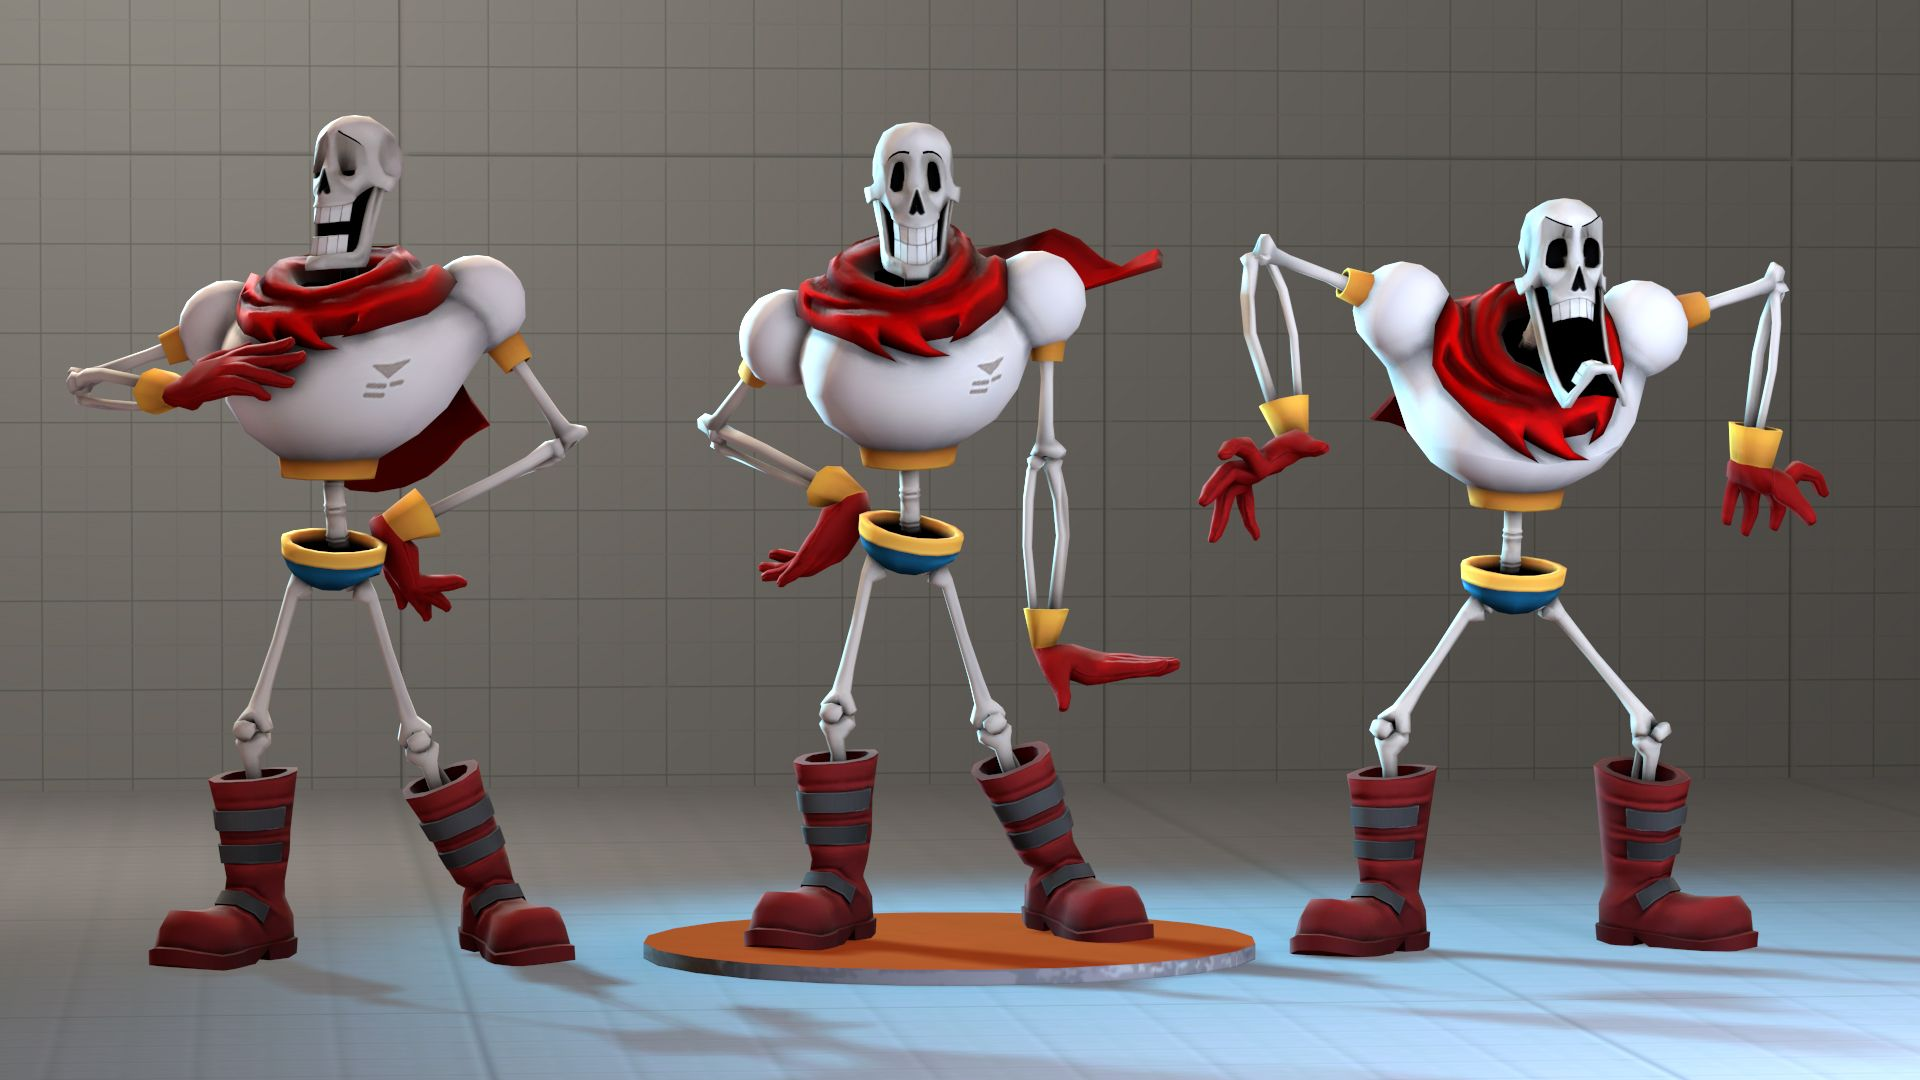 Papyrus Model for SFM by Py-Bun deviantart com on